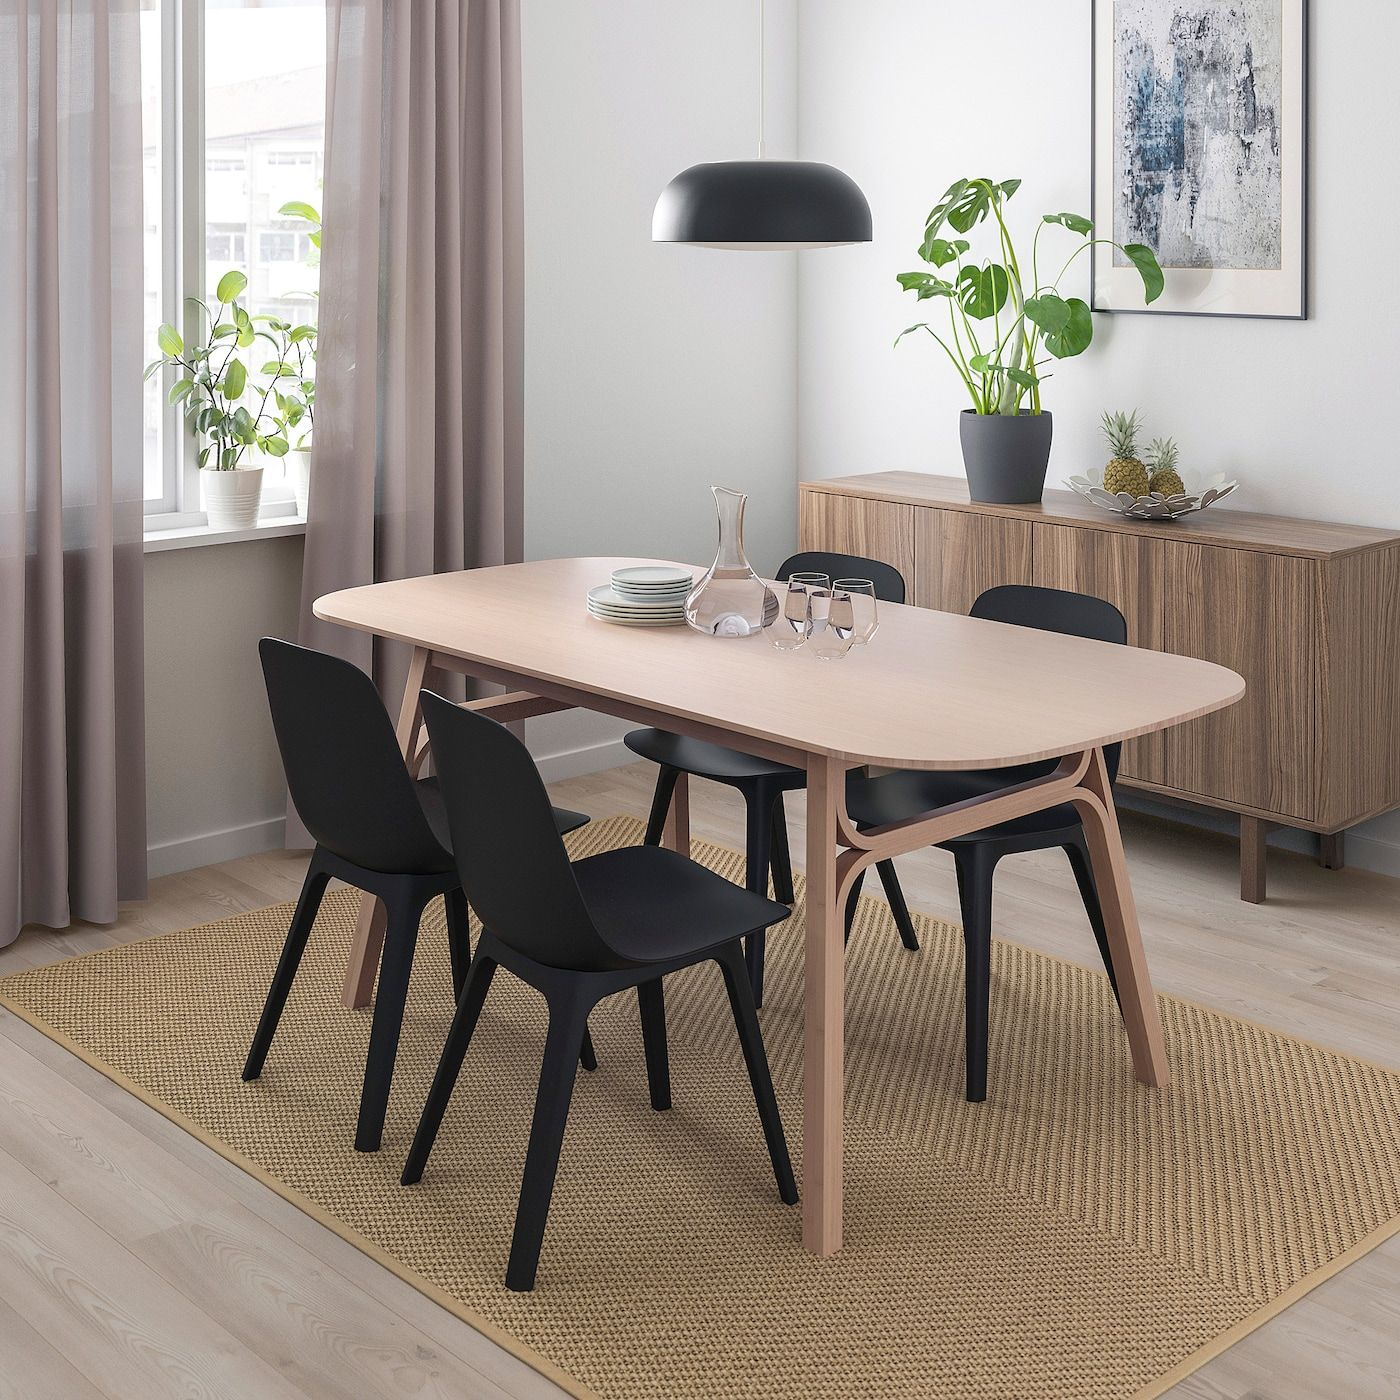 Voxlov Table Google Search Ikea Dining Table Ikea Dining Sets Dining Table